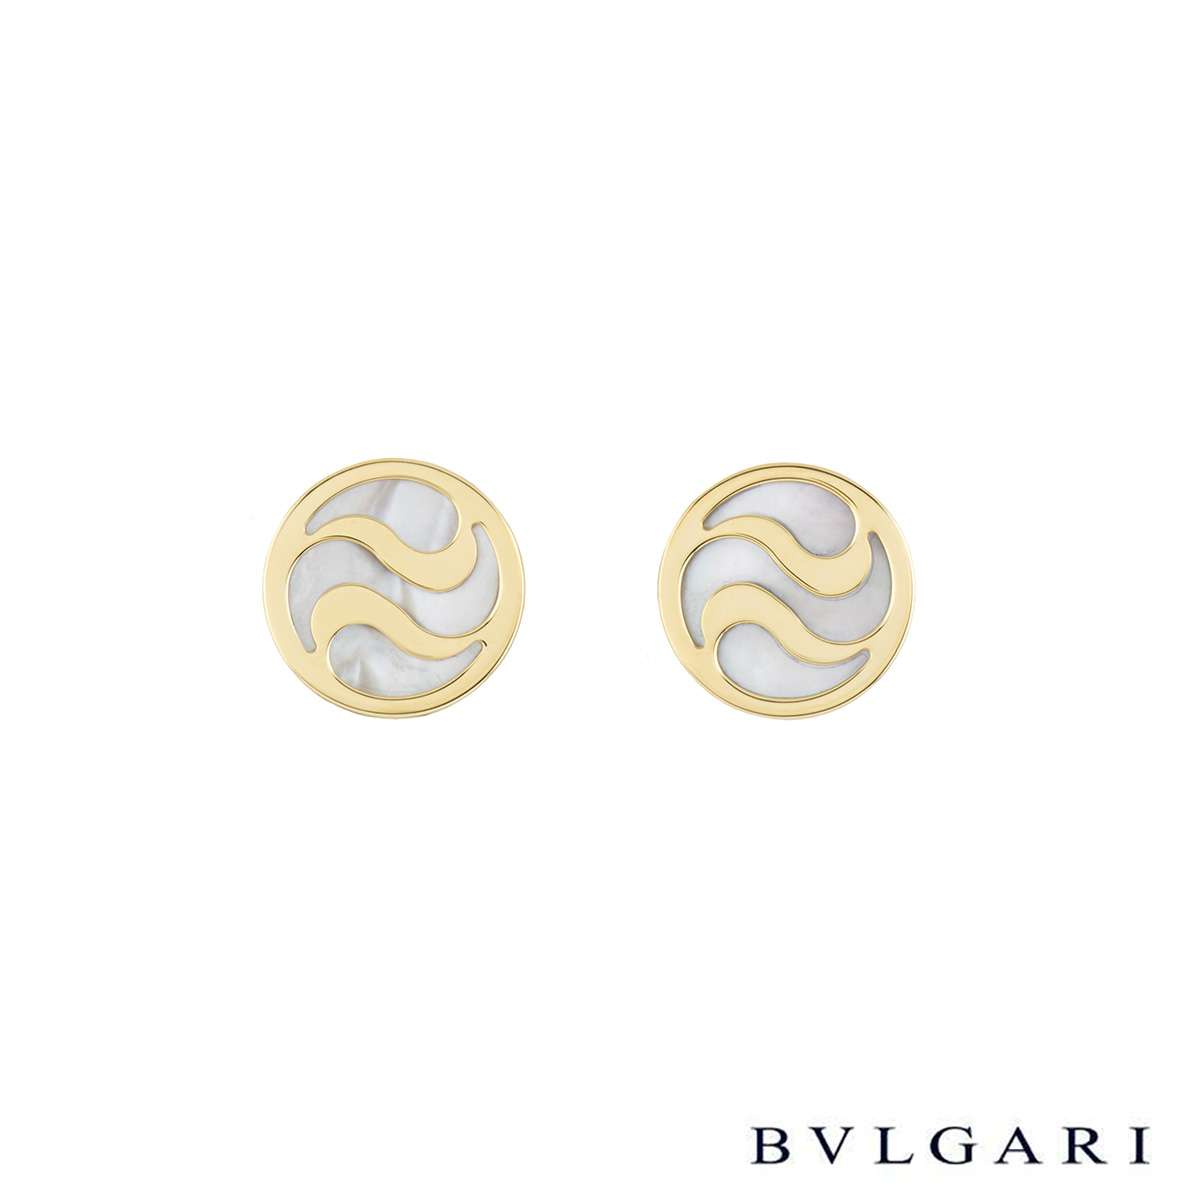 Bvlgari Yellow Gold and Mother of Pearl Optical Earrings